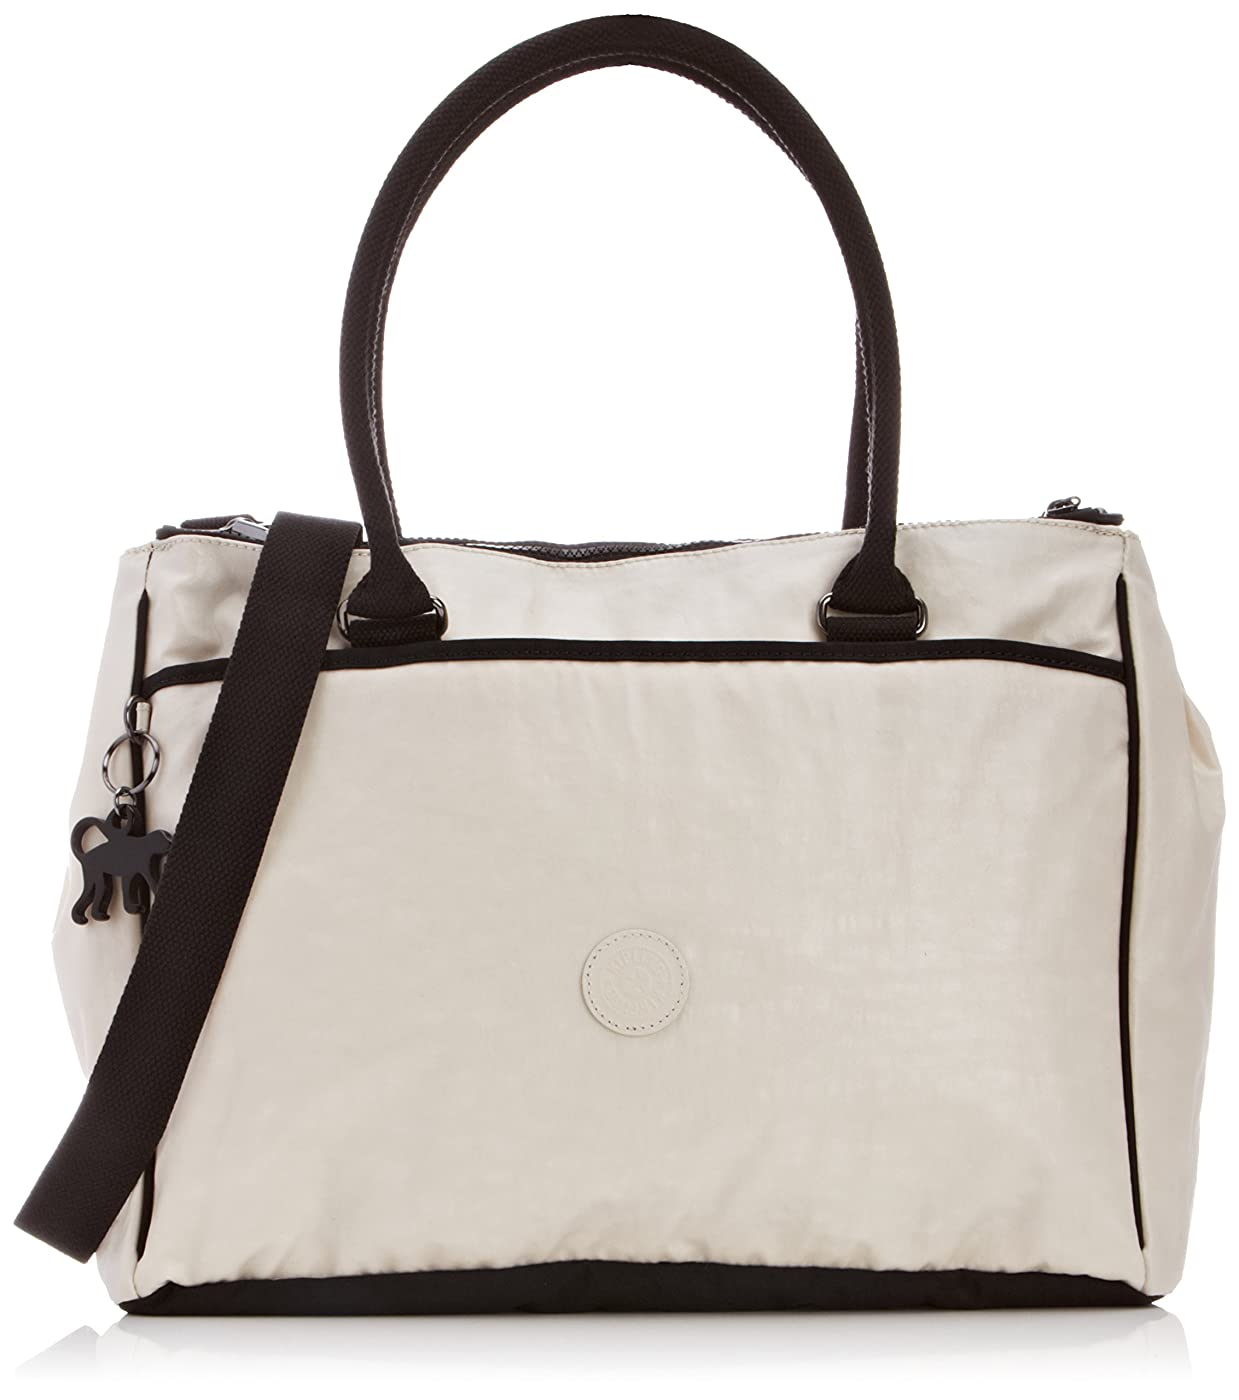 過敏な聖人机(Pearl Birch C) - Kipling Women's Halia TT Shoulder Bag